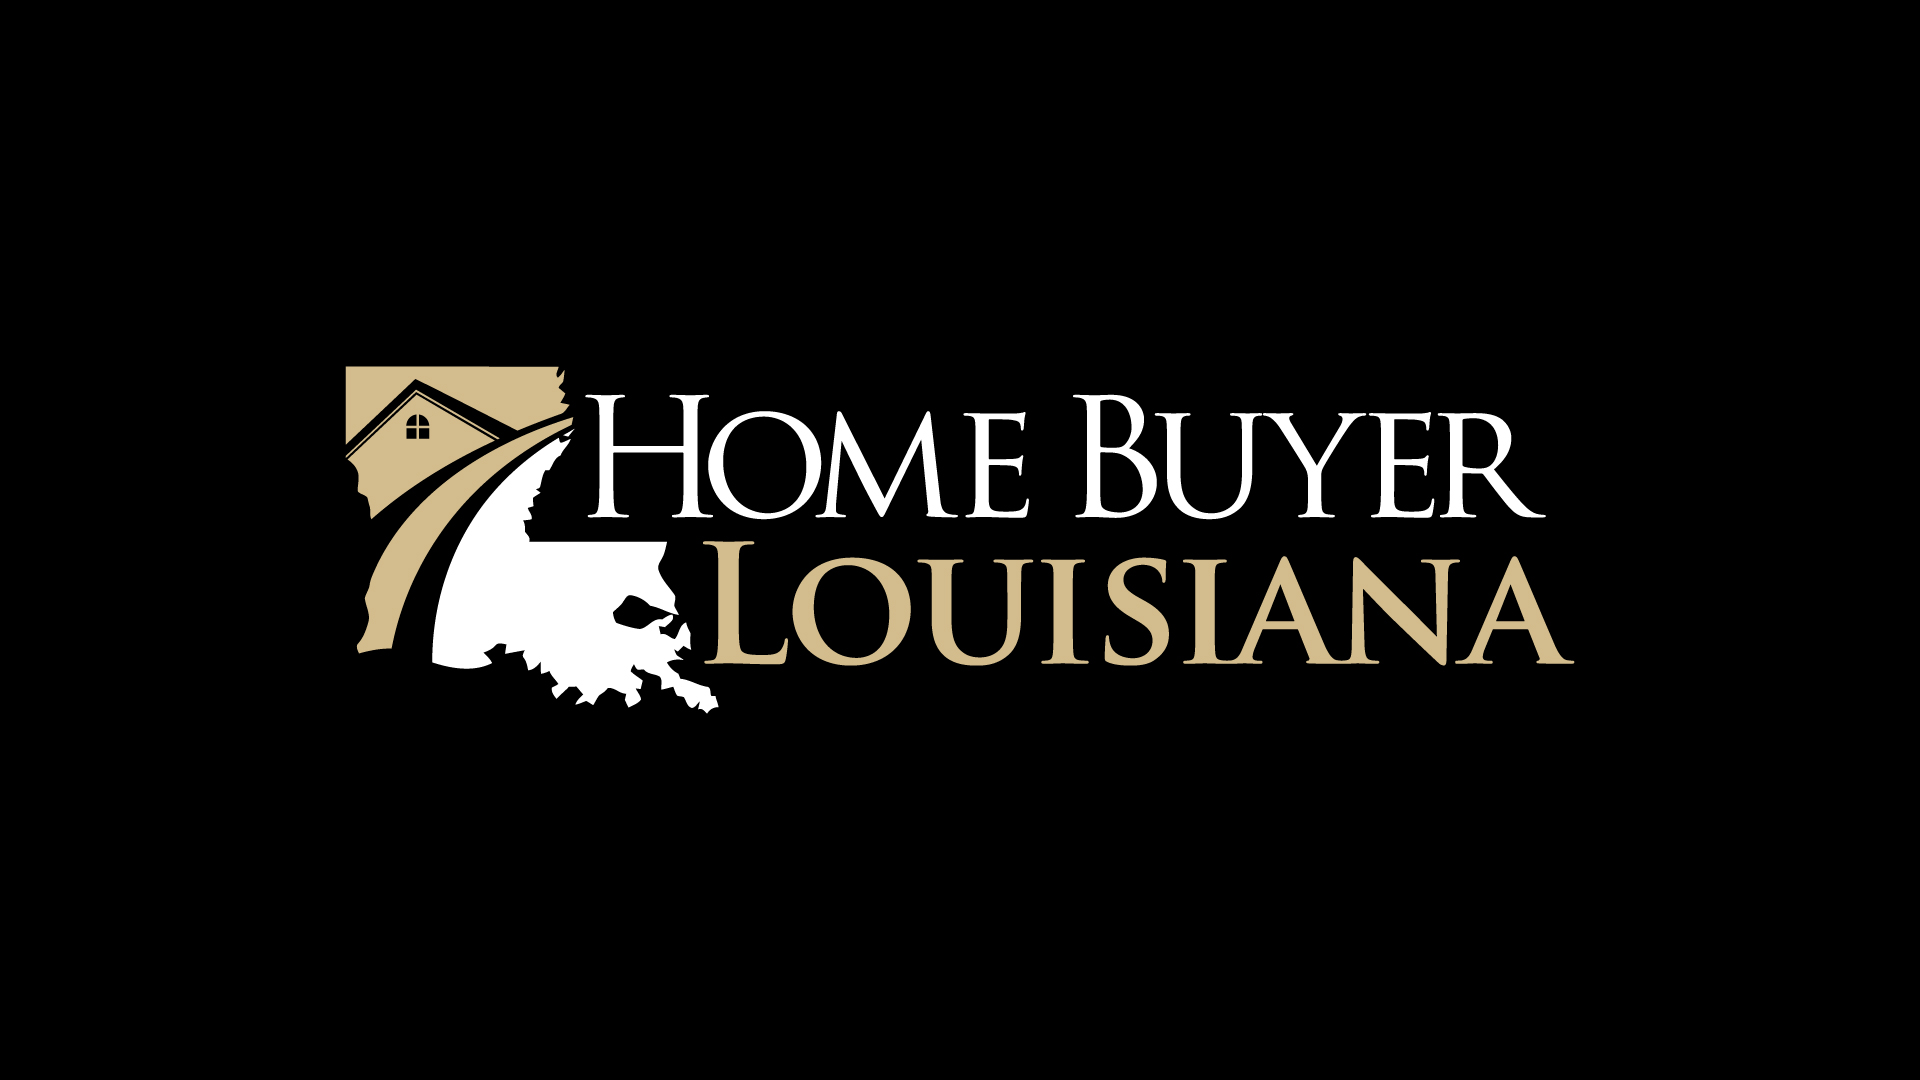 Home Buyer Louisiana